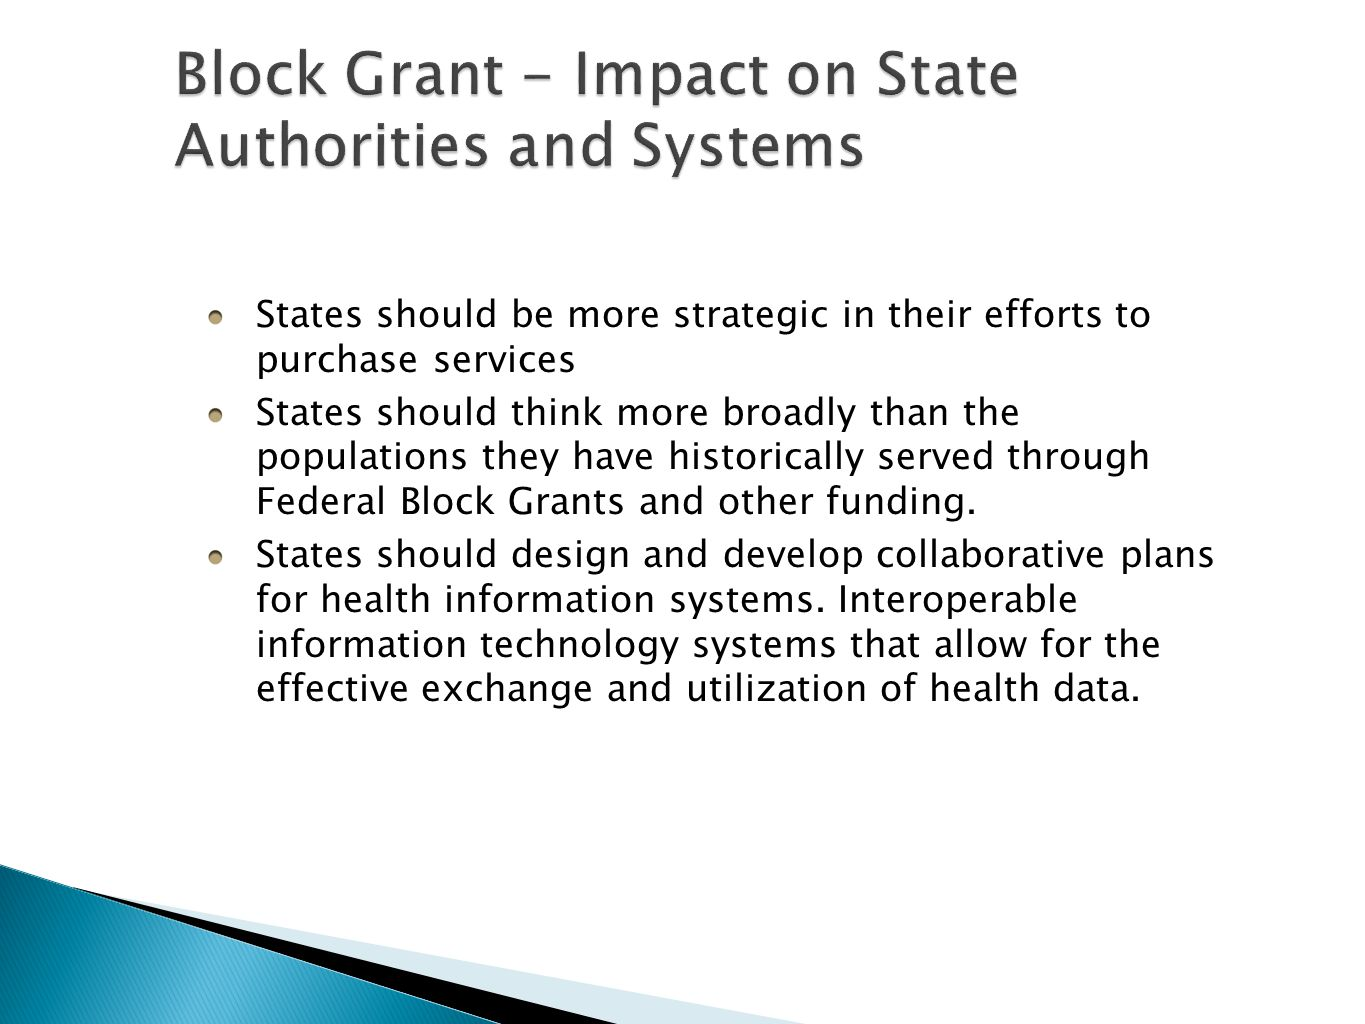 States should be more strategic in their efforts to purchase services States should think more broadly than the populations they have historically served through Federal Block Grants and other funding.